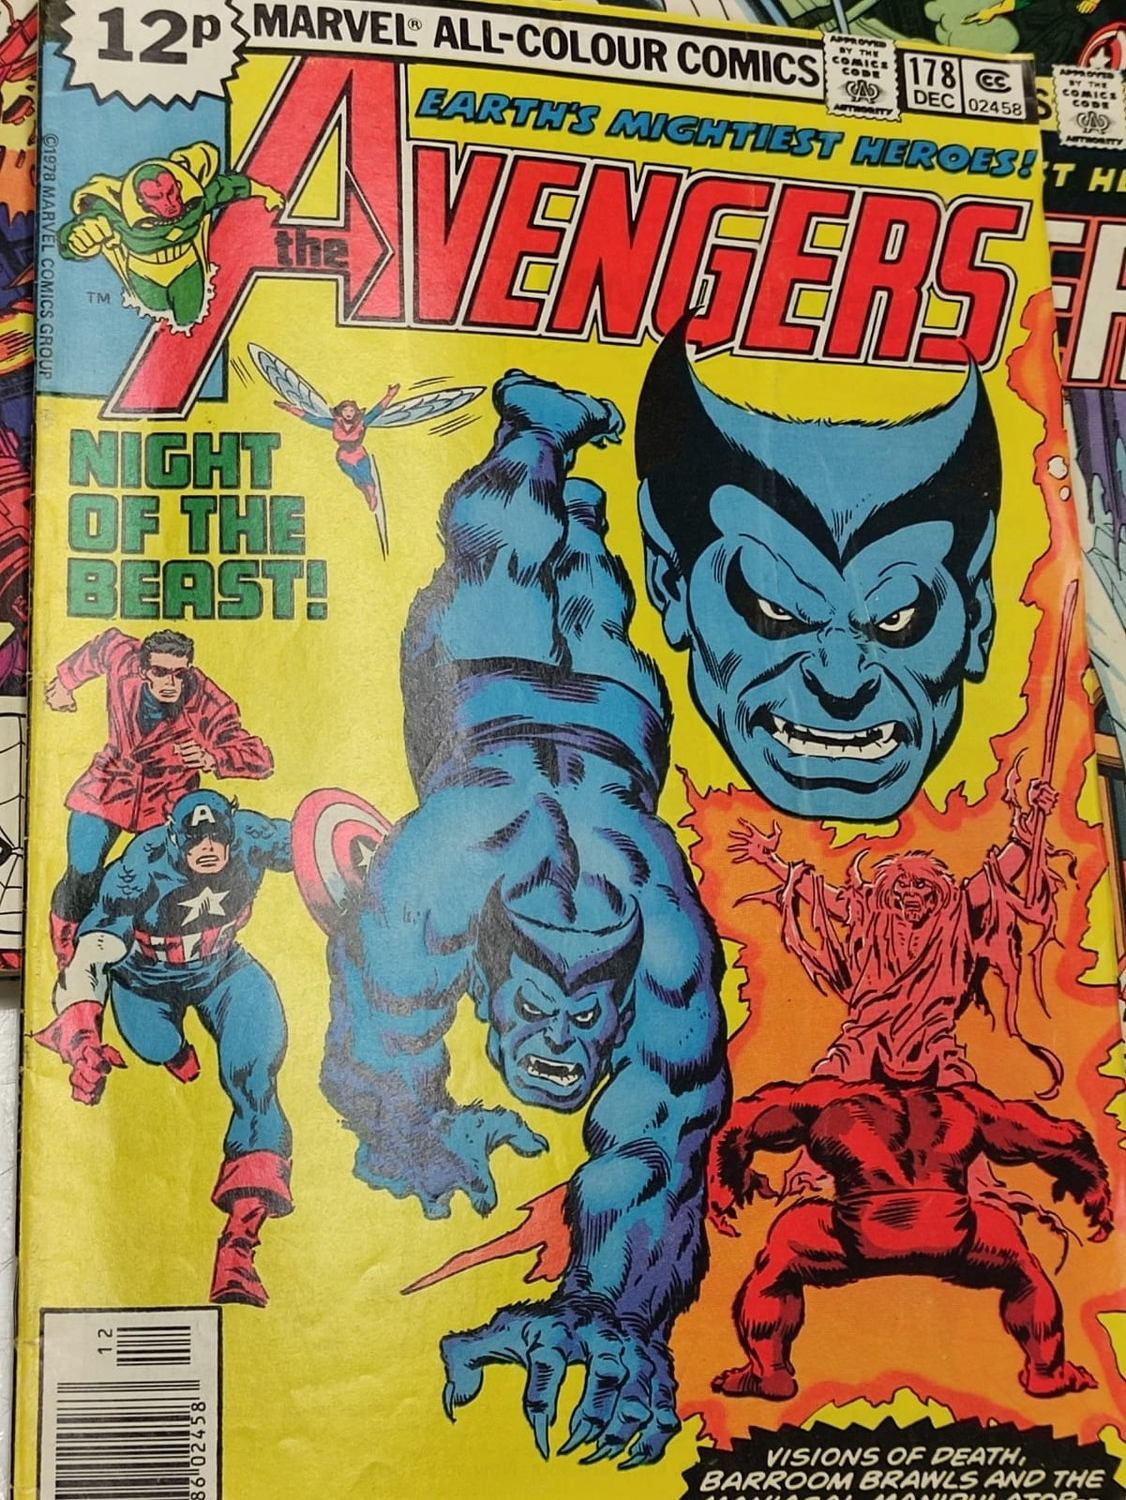 17 editions of Vintage Marvel 'The Avengers' comics in very good condition. - Image 3 of 12